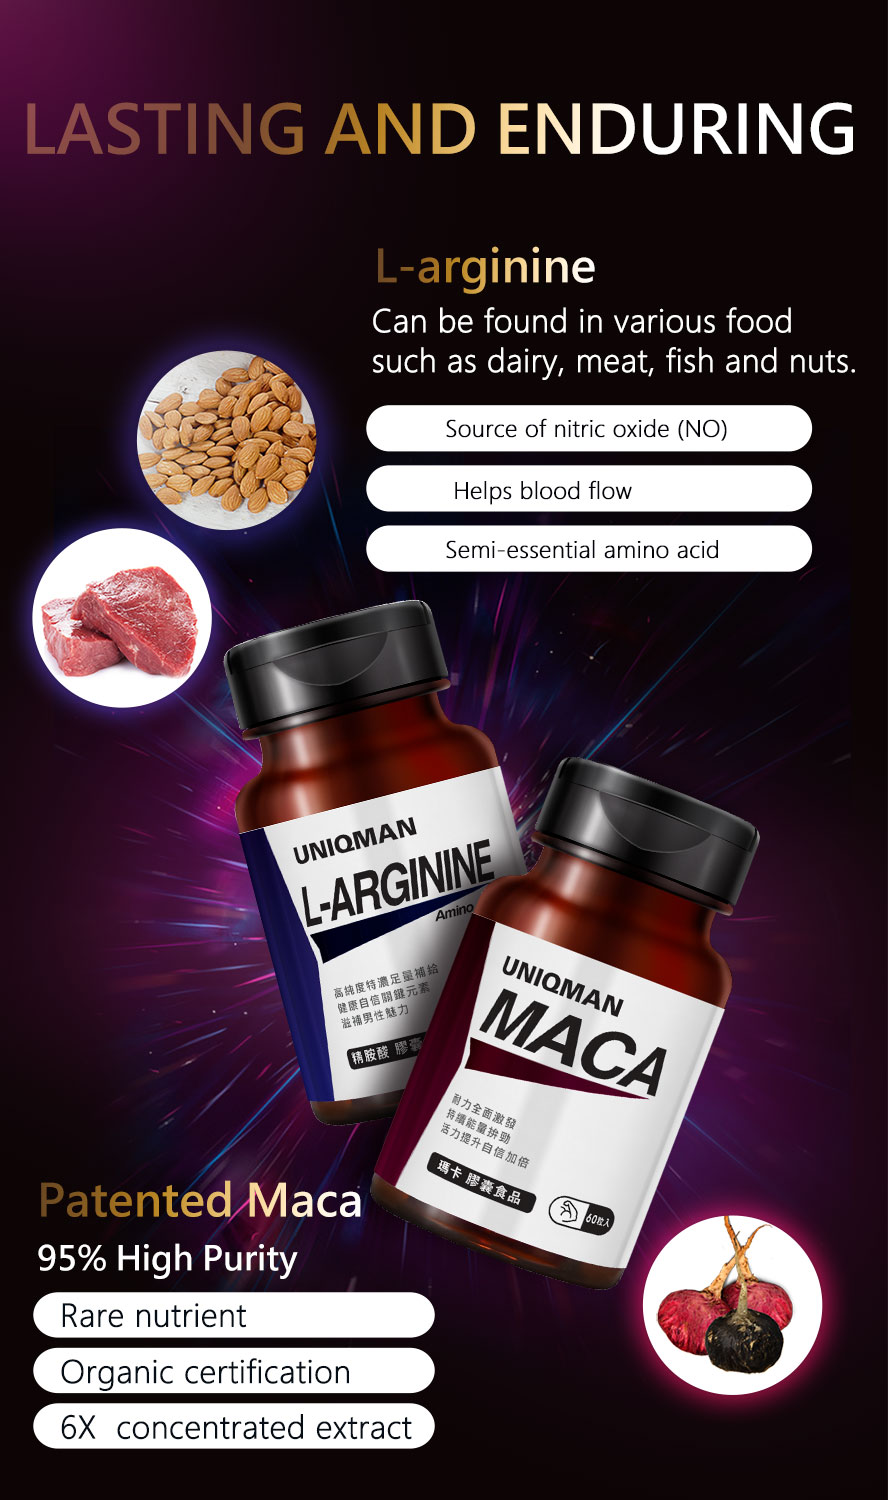 Larginine can be found in blood vessels and brain